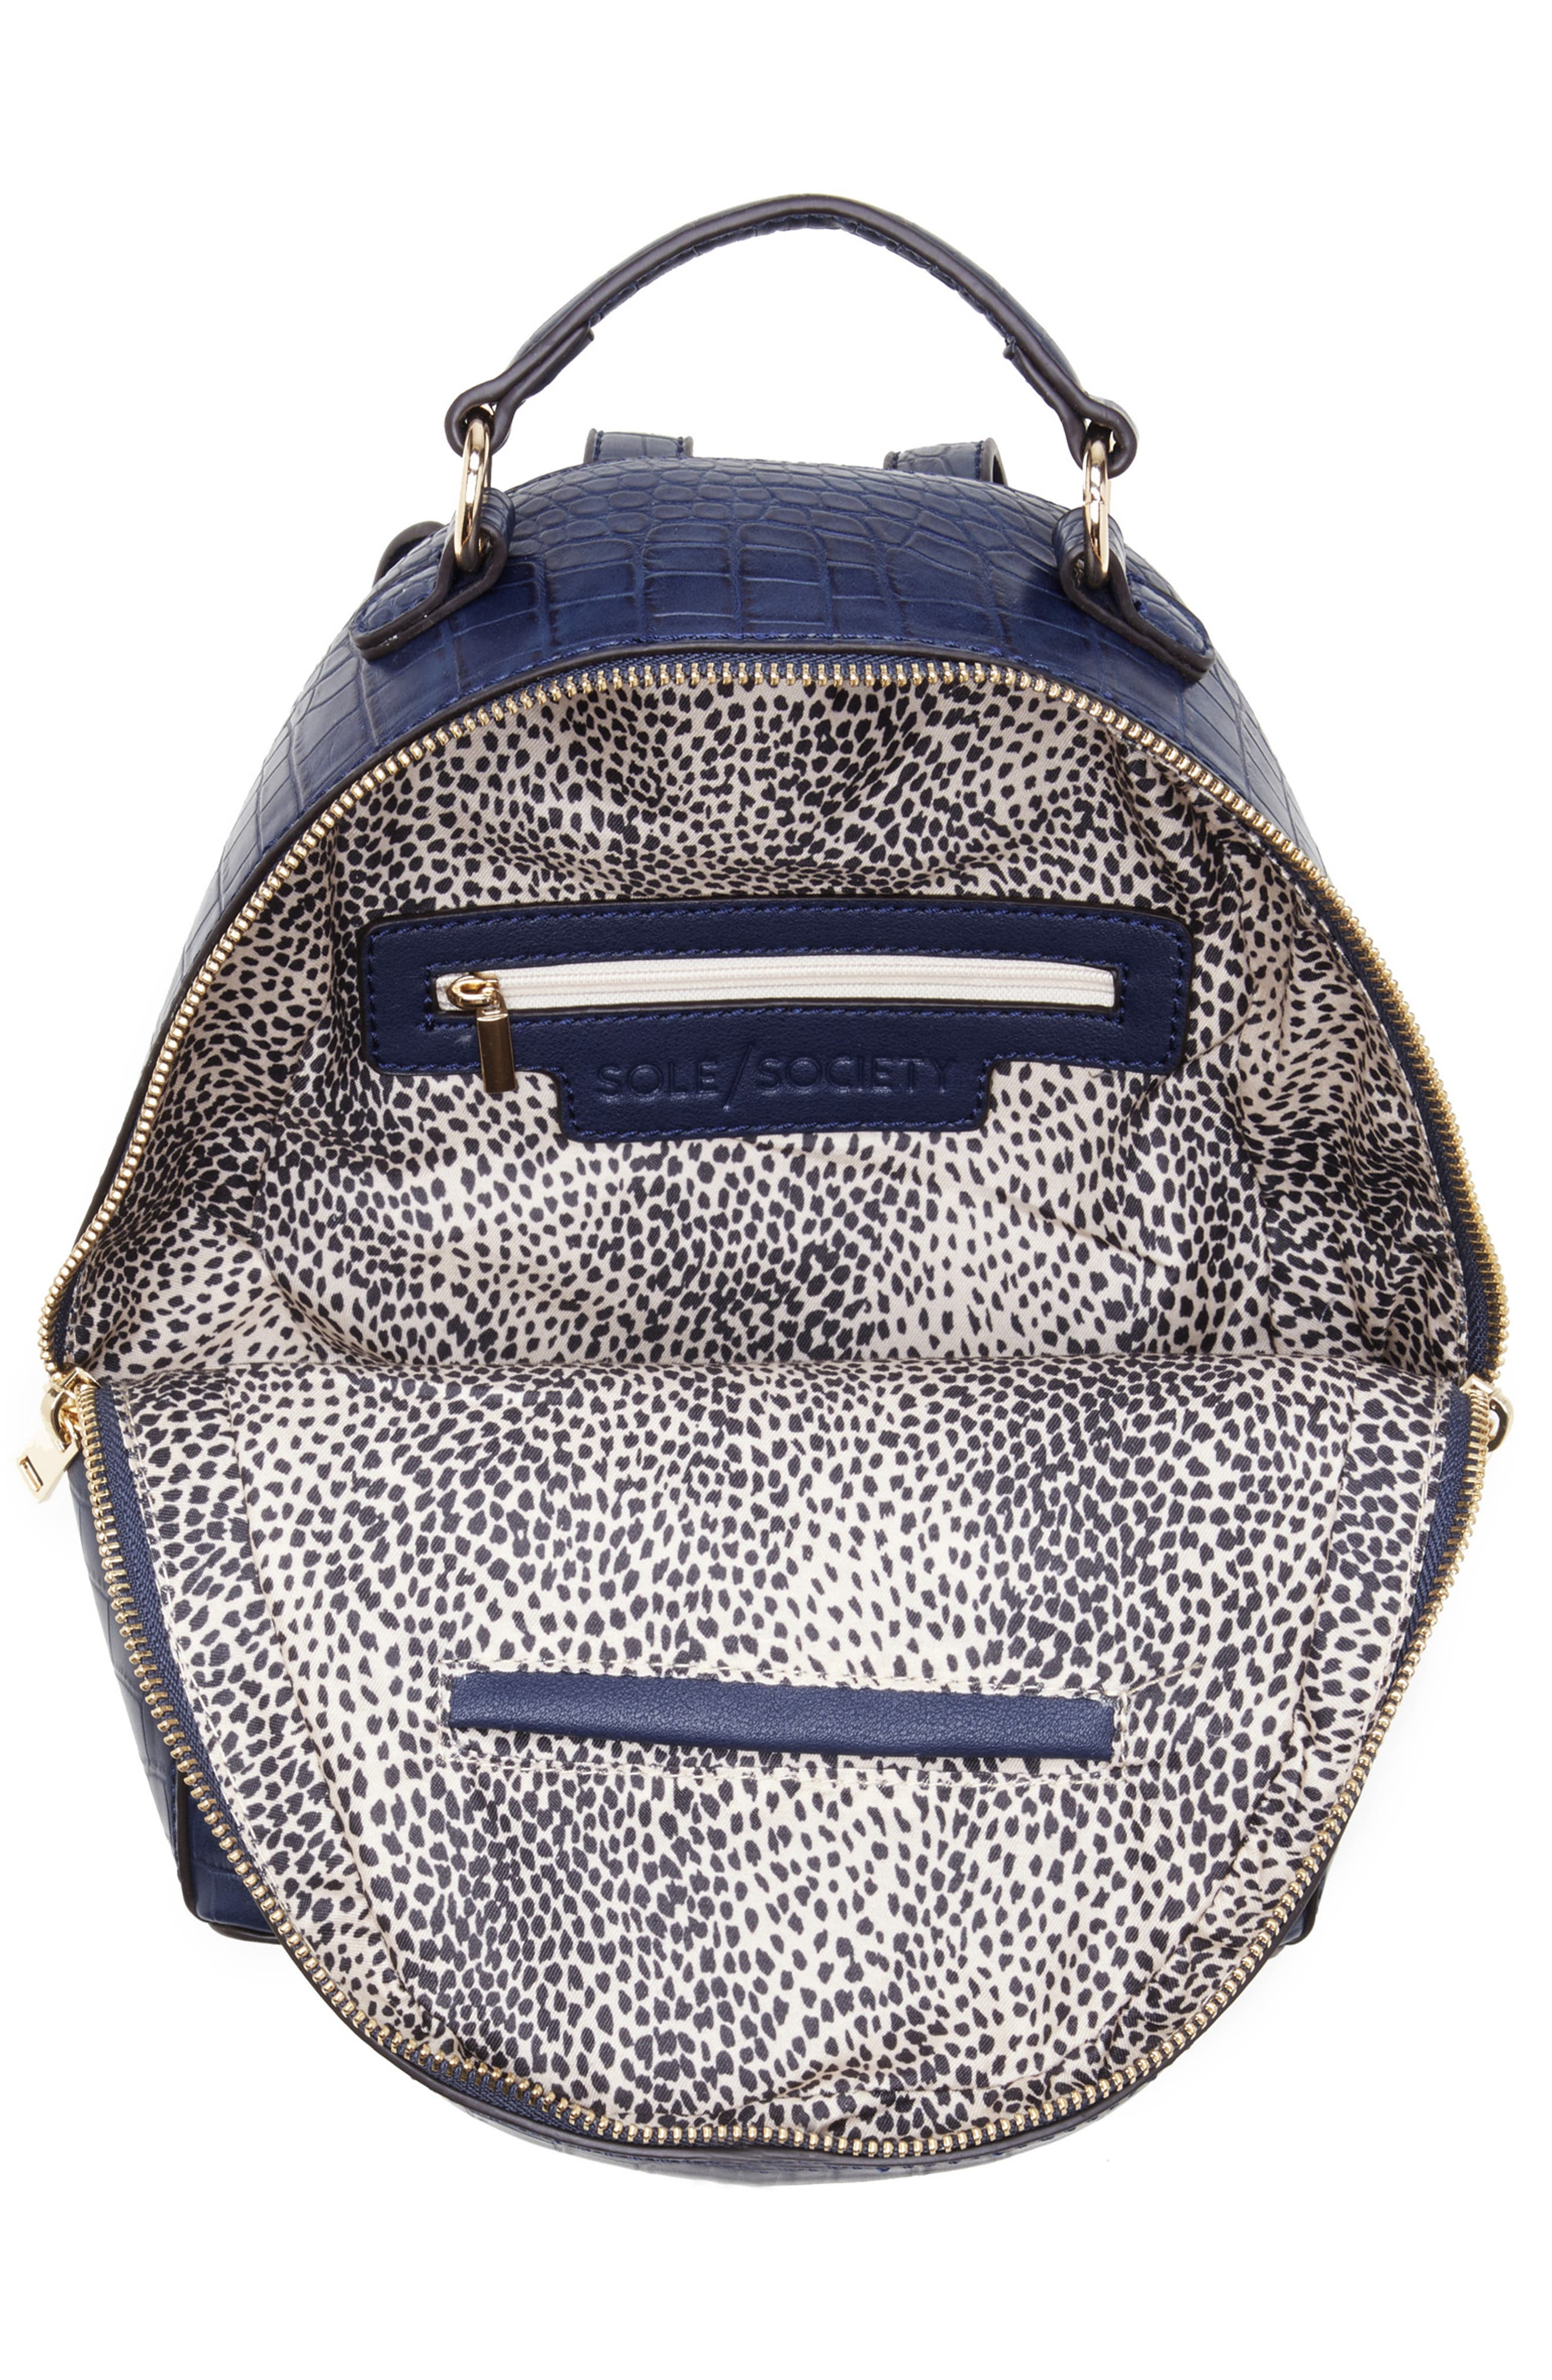 SOLE SOCIETY, Jamya Croc Embossed Faux Leather Backpack, Alternate thumbnail 4, color, MIDNIGHT